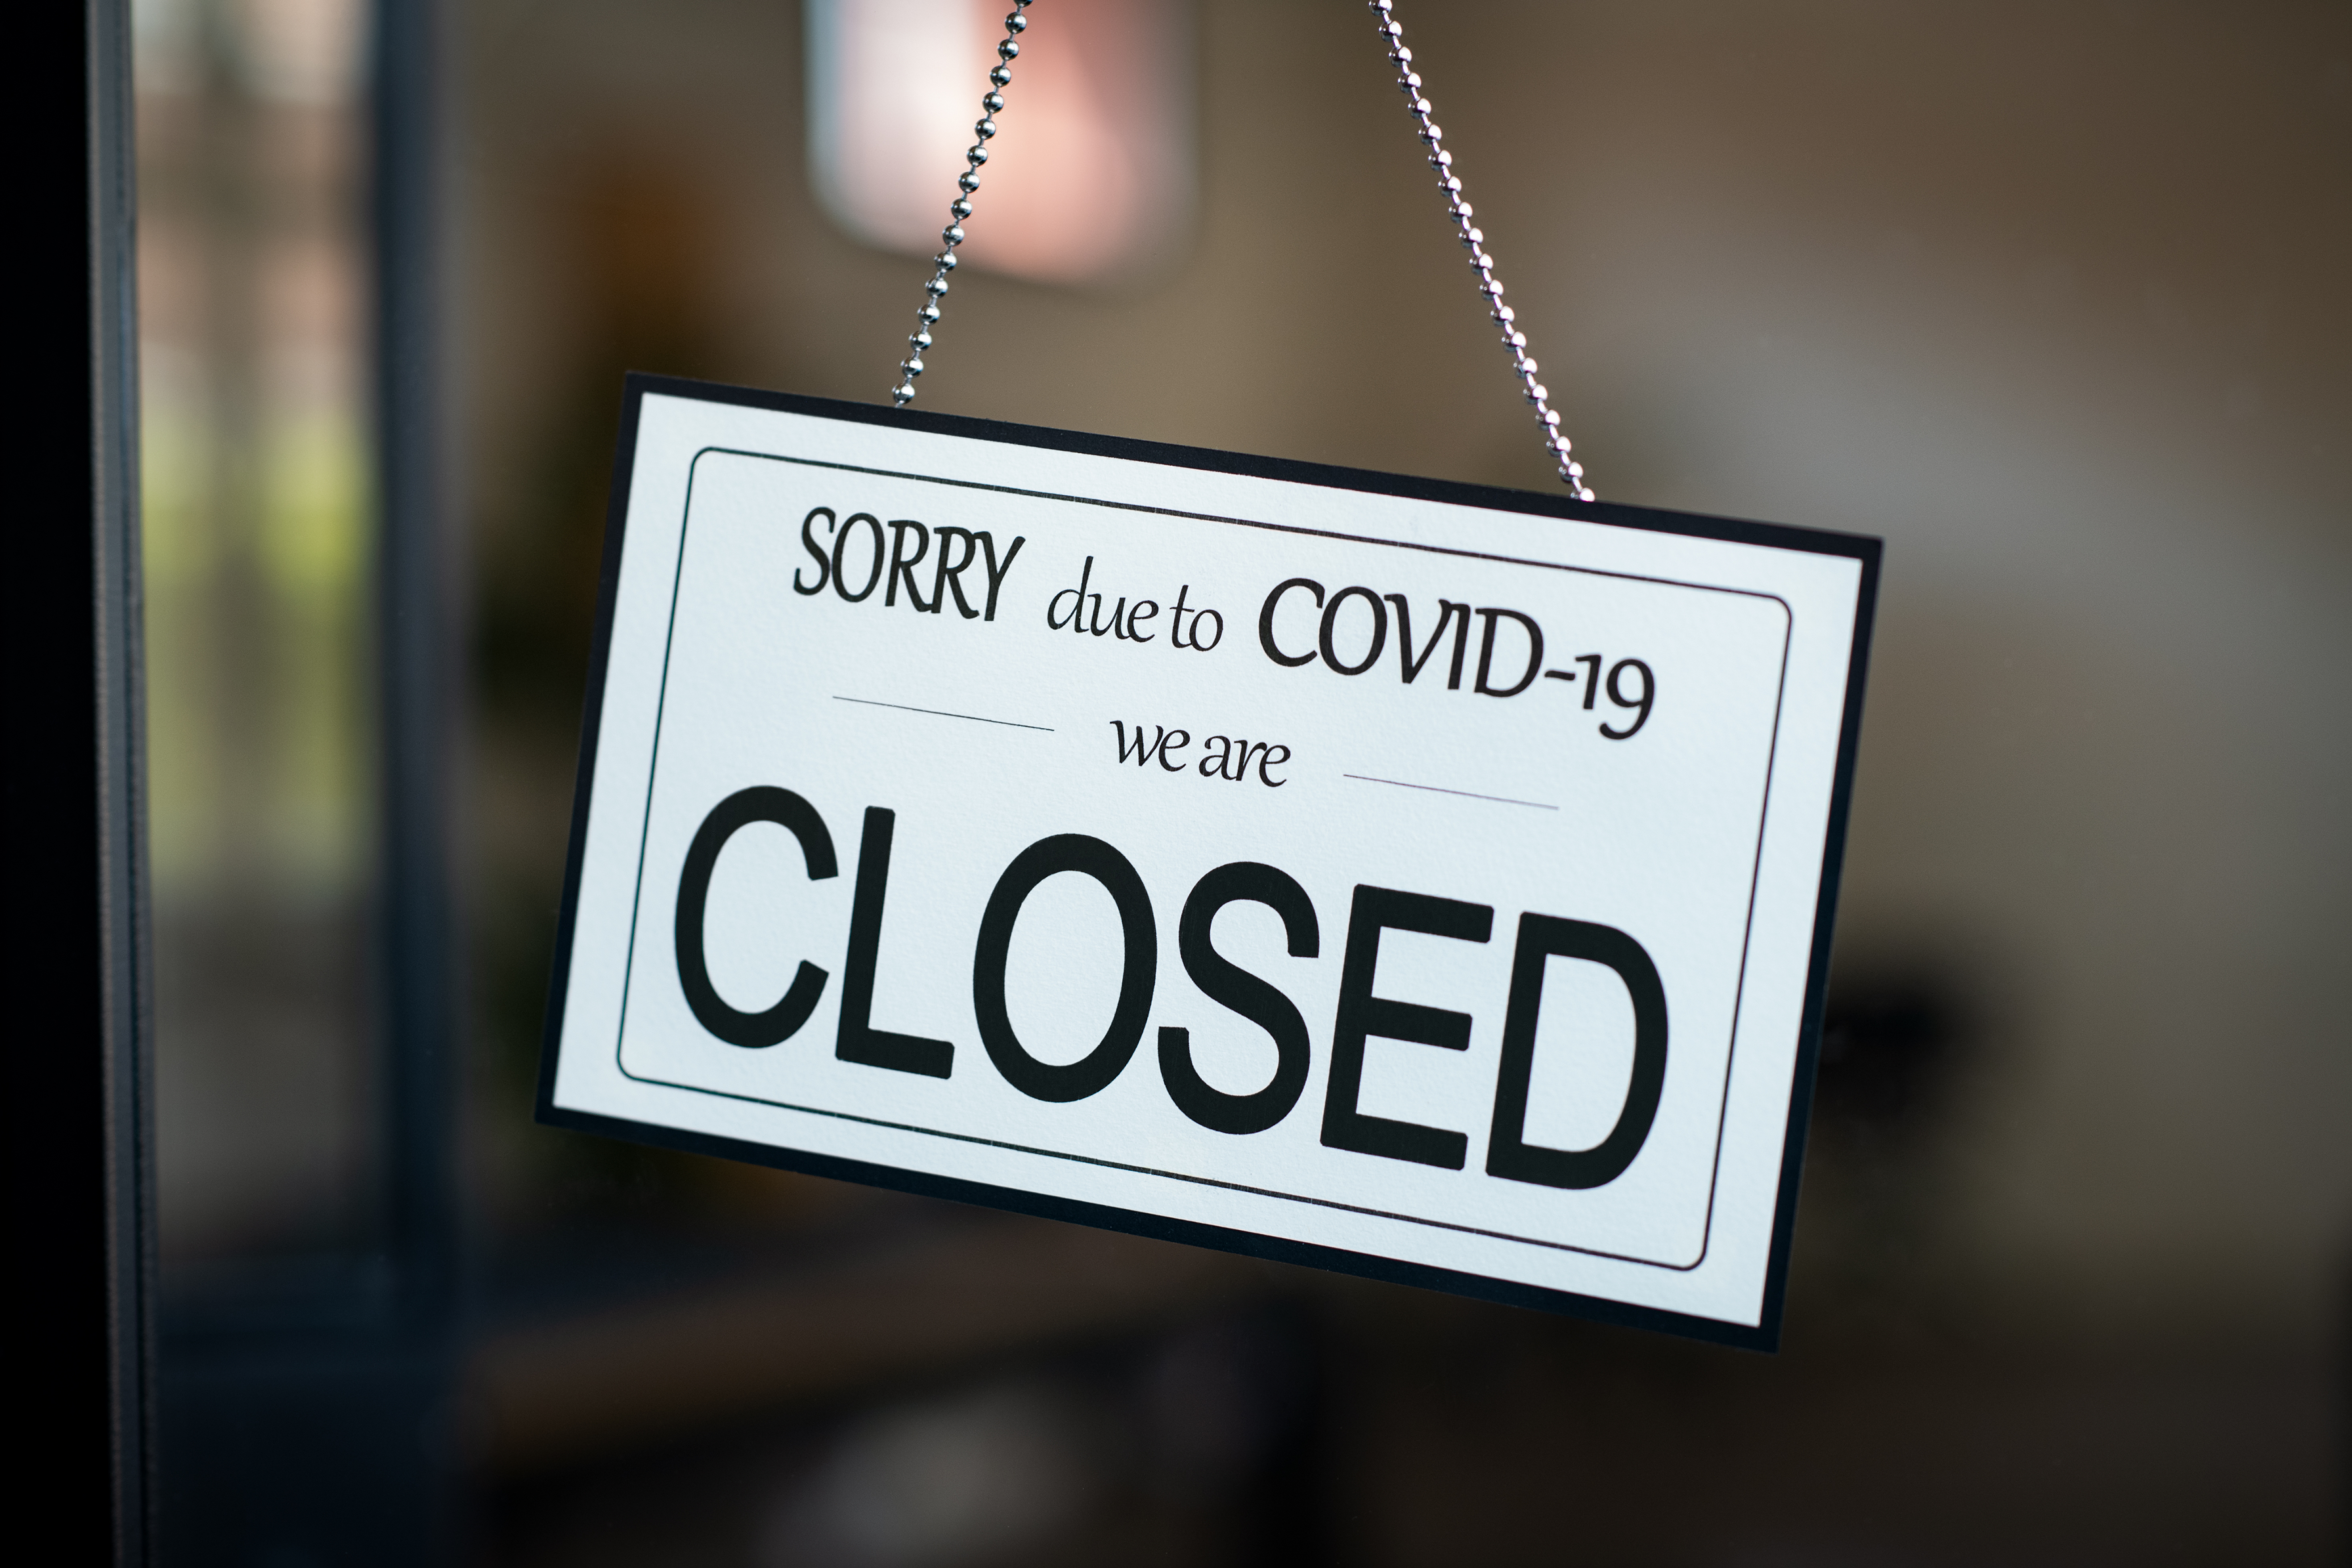 closed-sign-hanging-on-door-of-cafe-due-to-covid-1-8FWBYKK